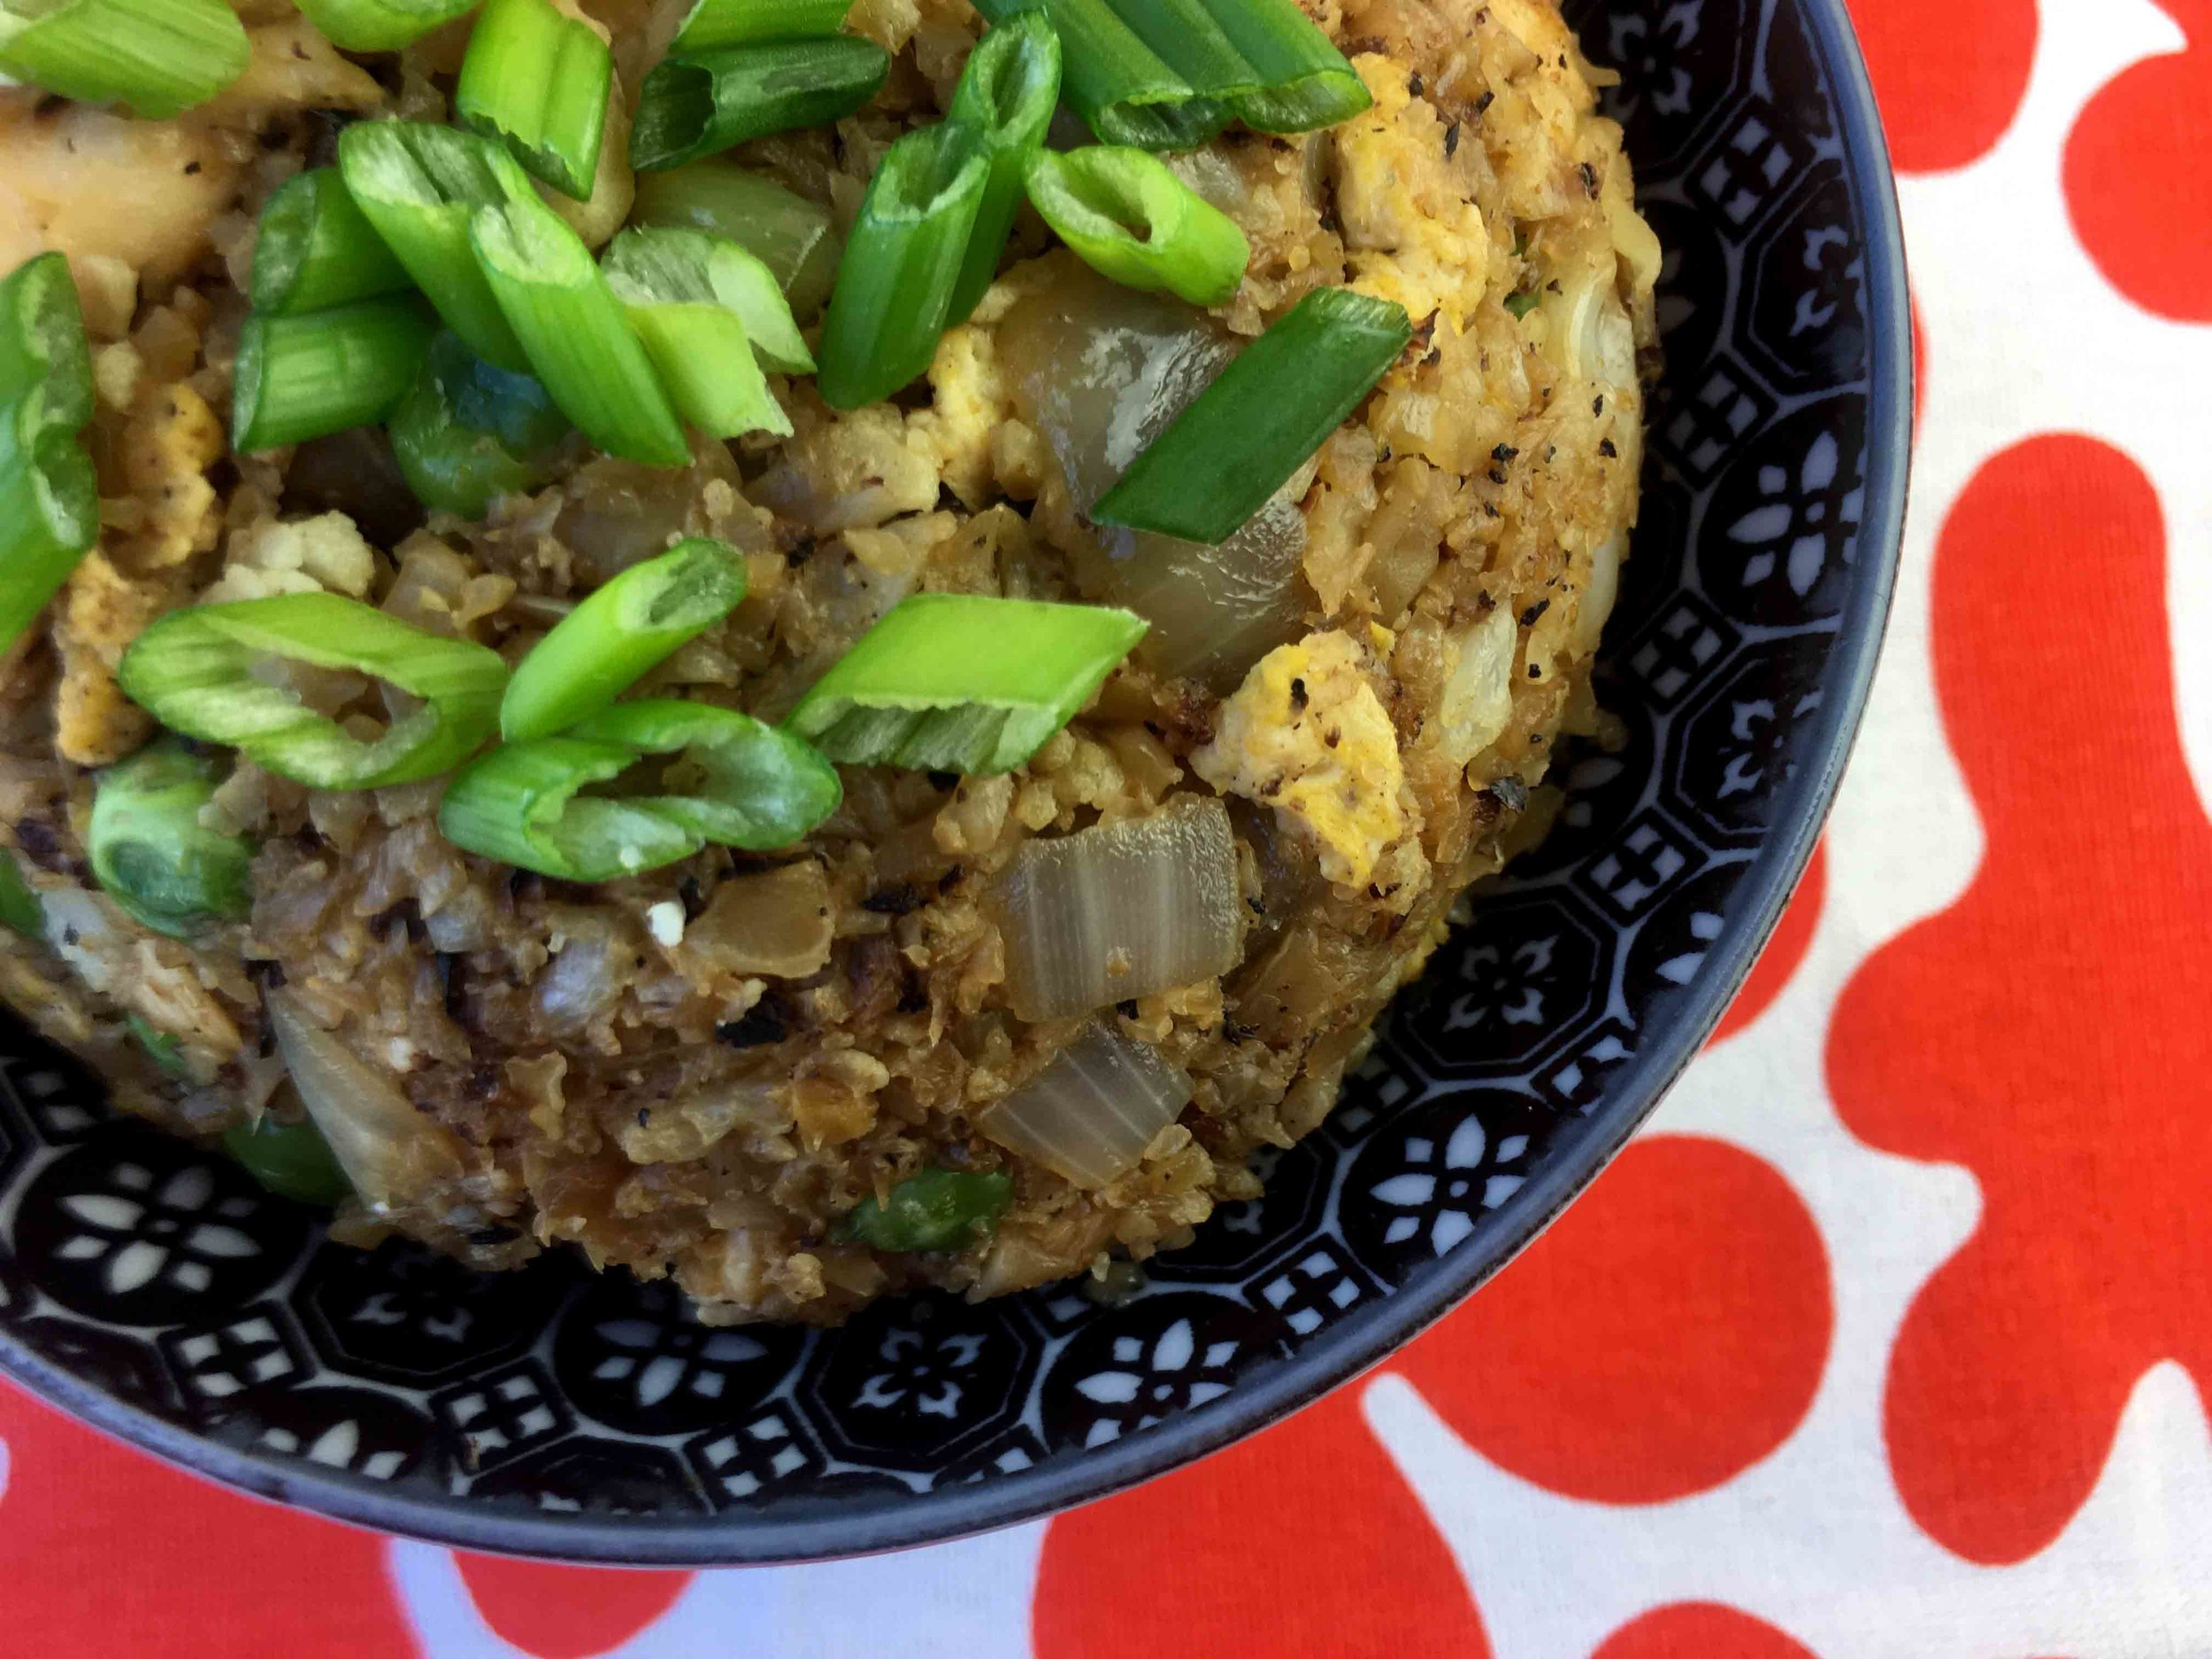 Low Carb Keto Grain Free Chicken Cauliflower Fried Rice Recipe